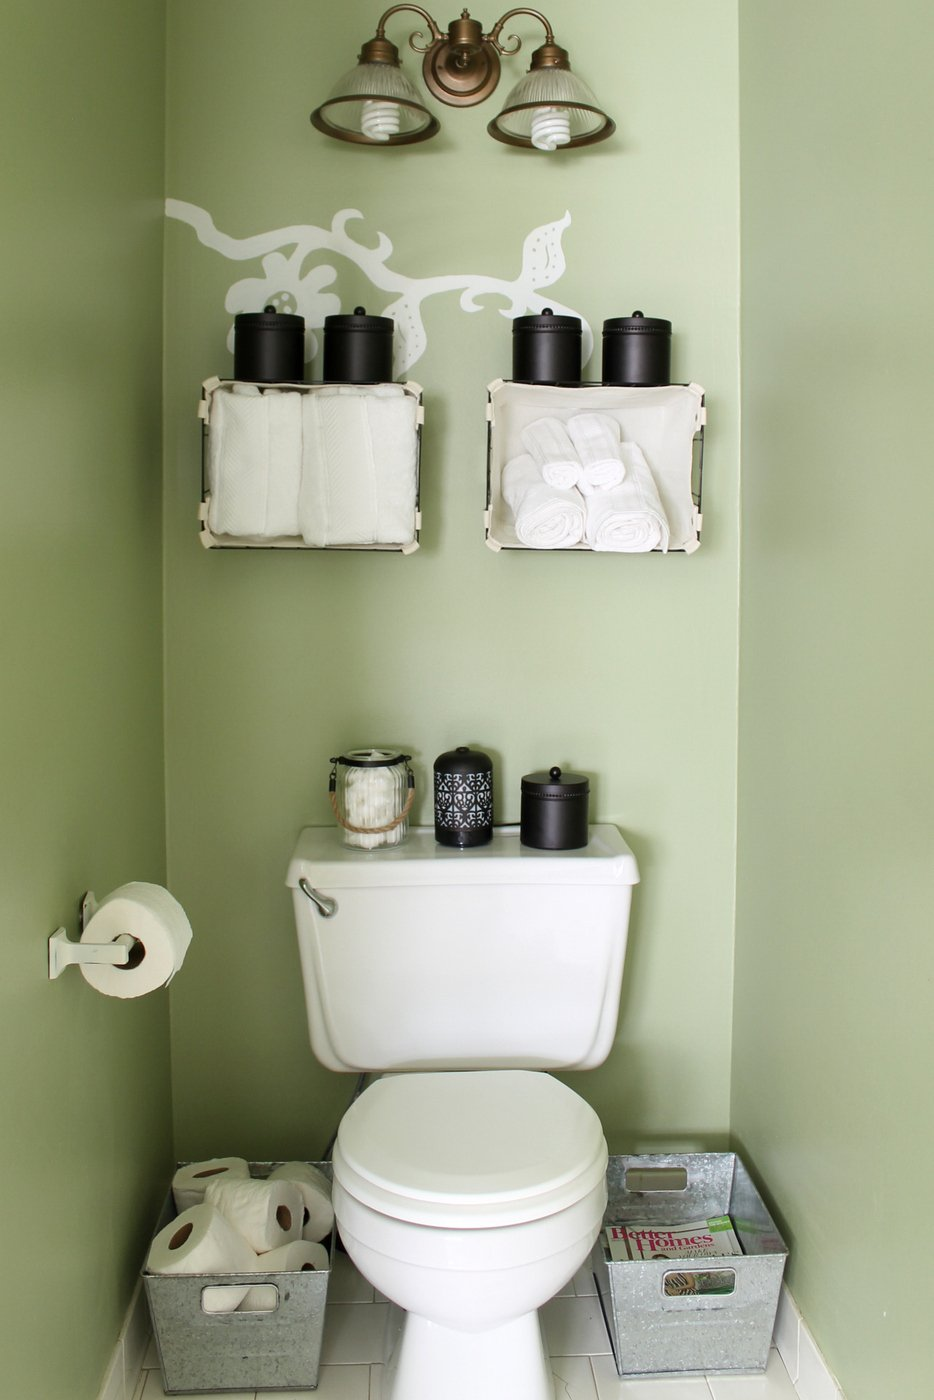 small bathroom organization ideas the country chic cottage small bathroom organization ideas that really work quick and easy ideas to organize your tiny